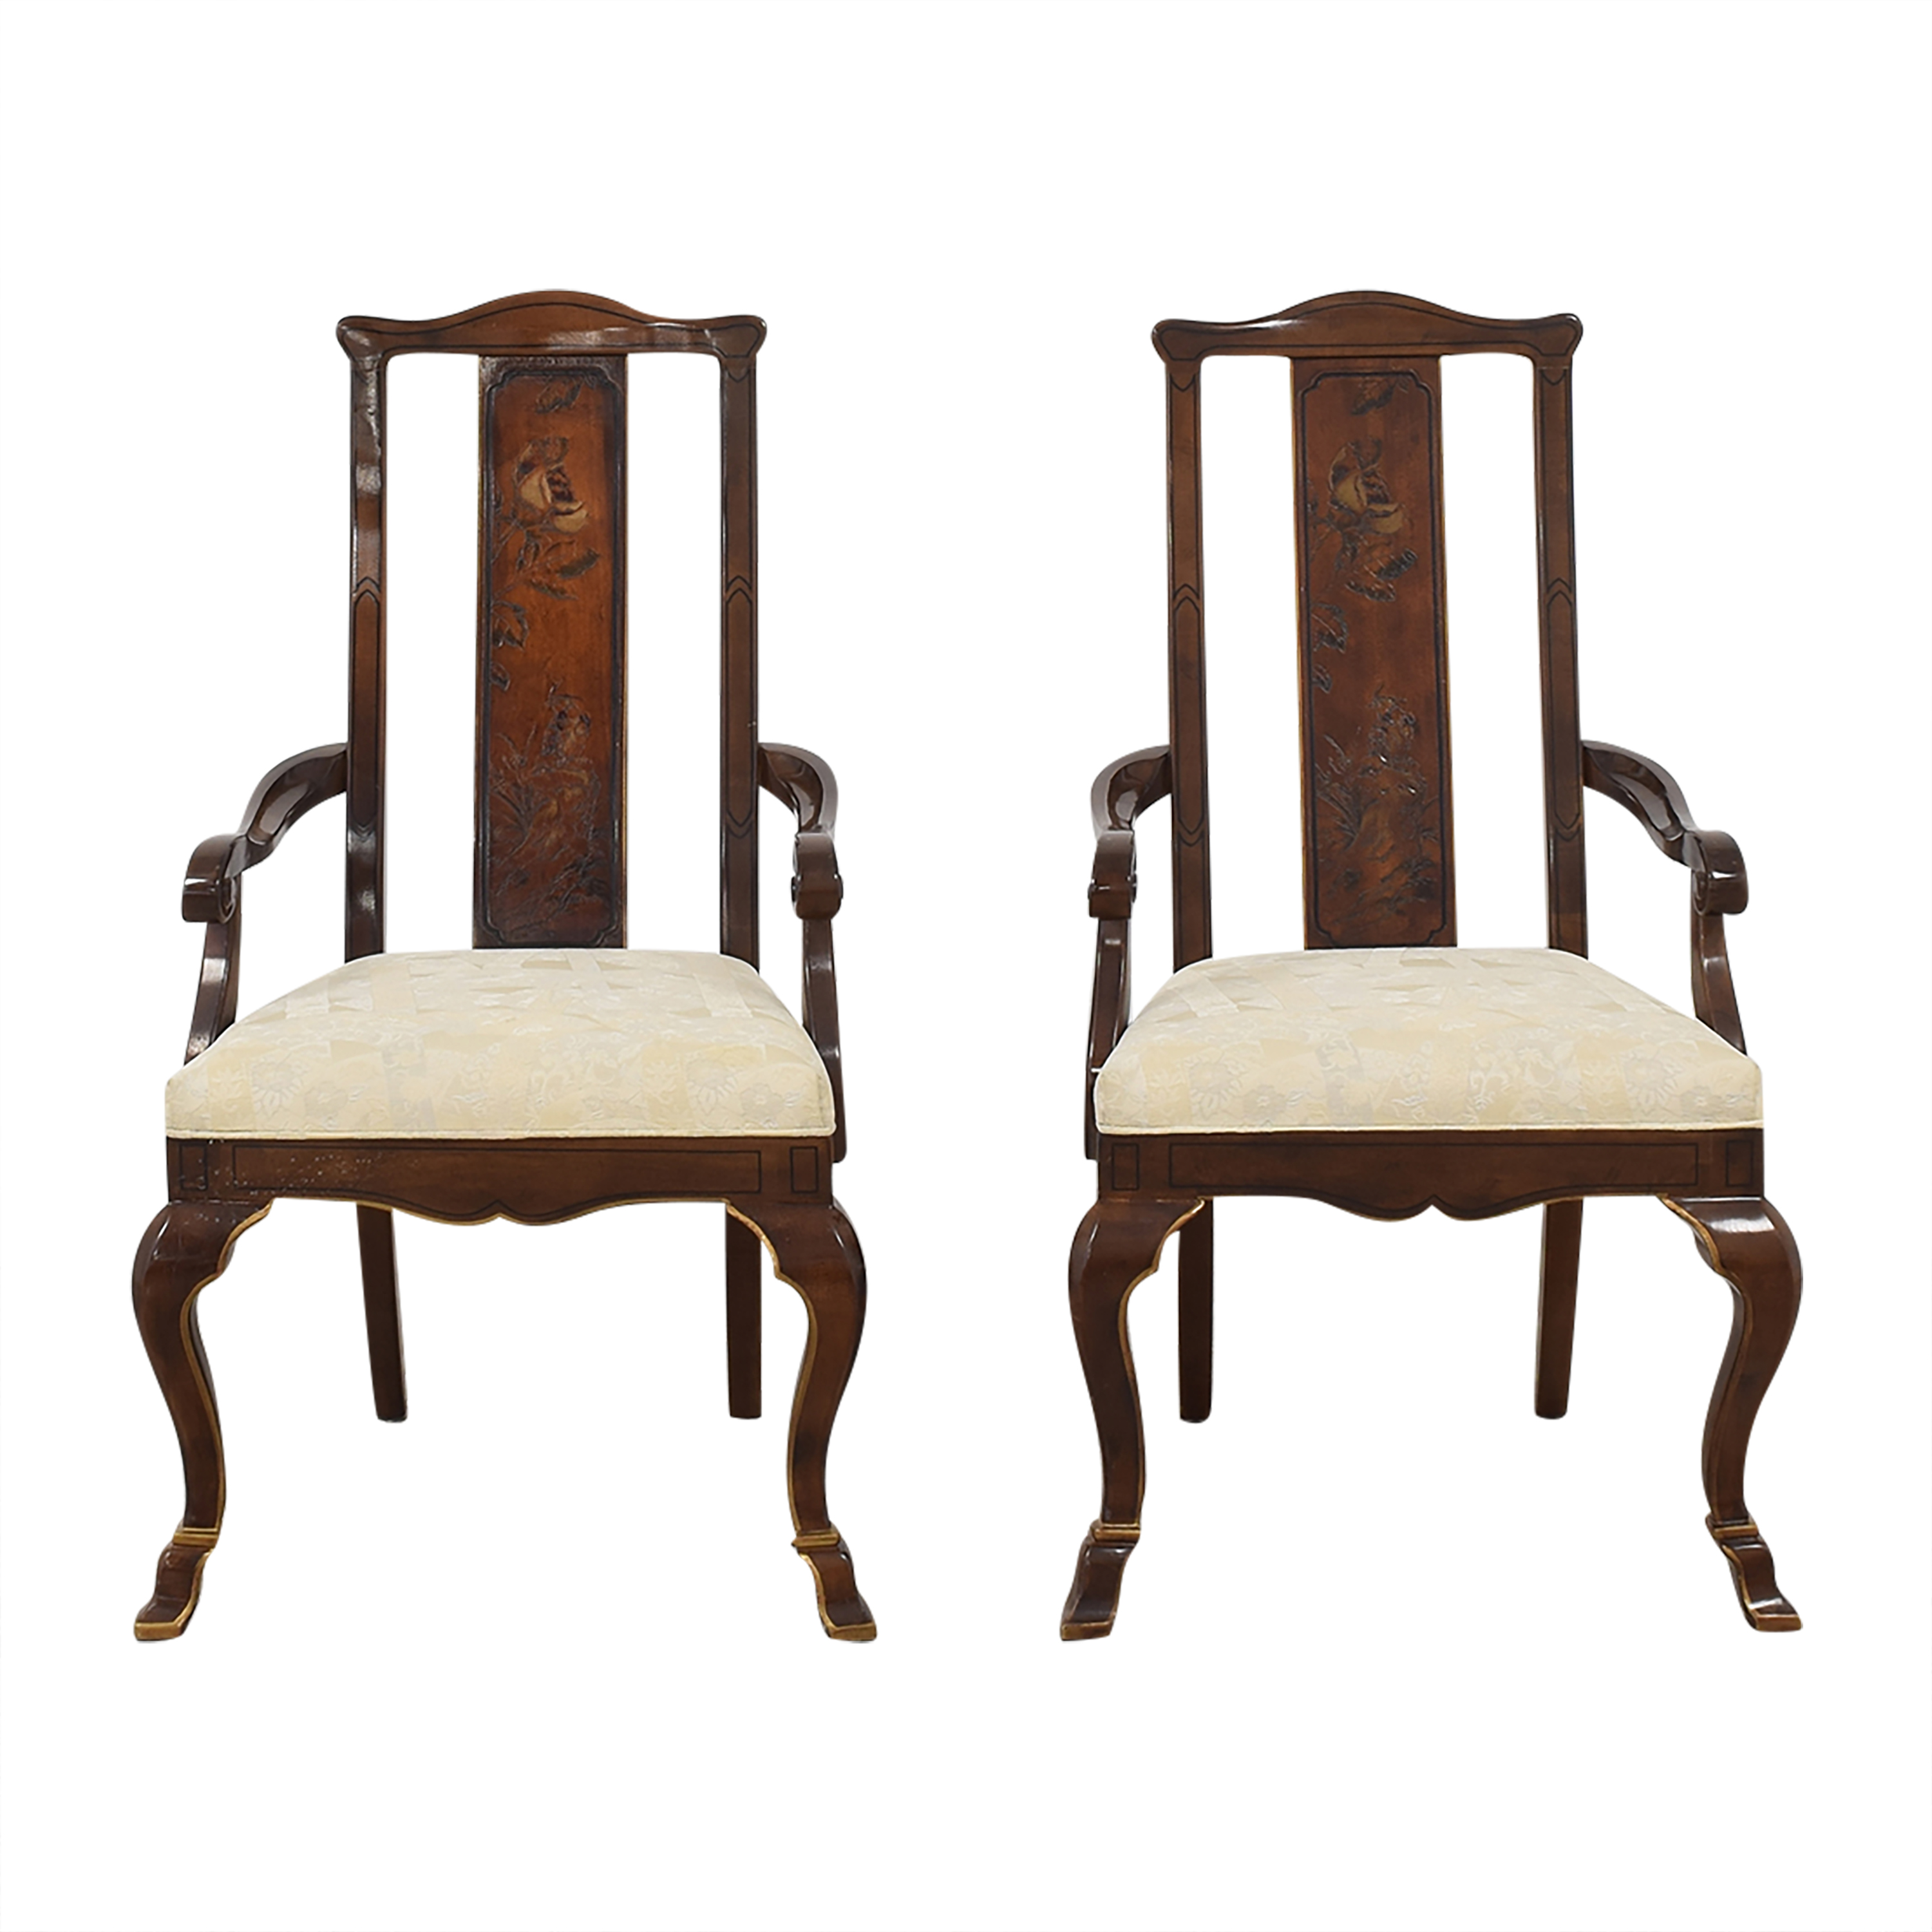 Drexel Heritage Drexel Heritage High Back Dining Chairs Brown